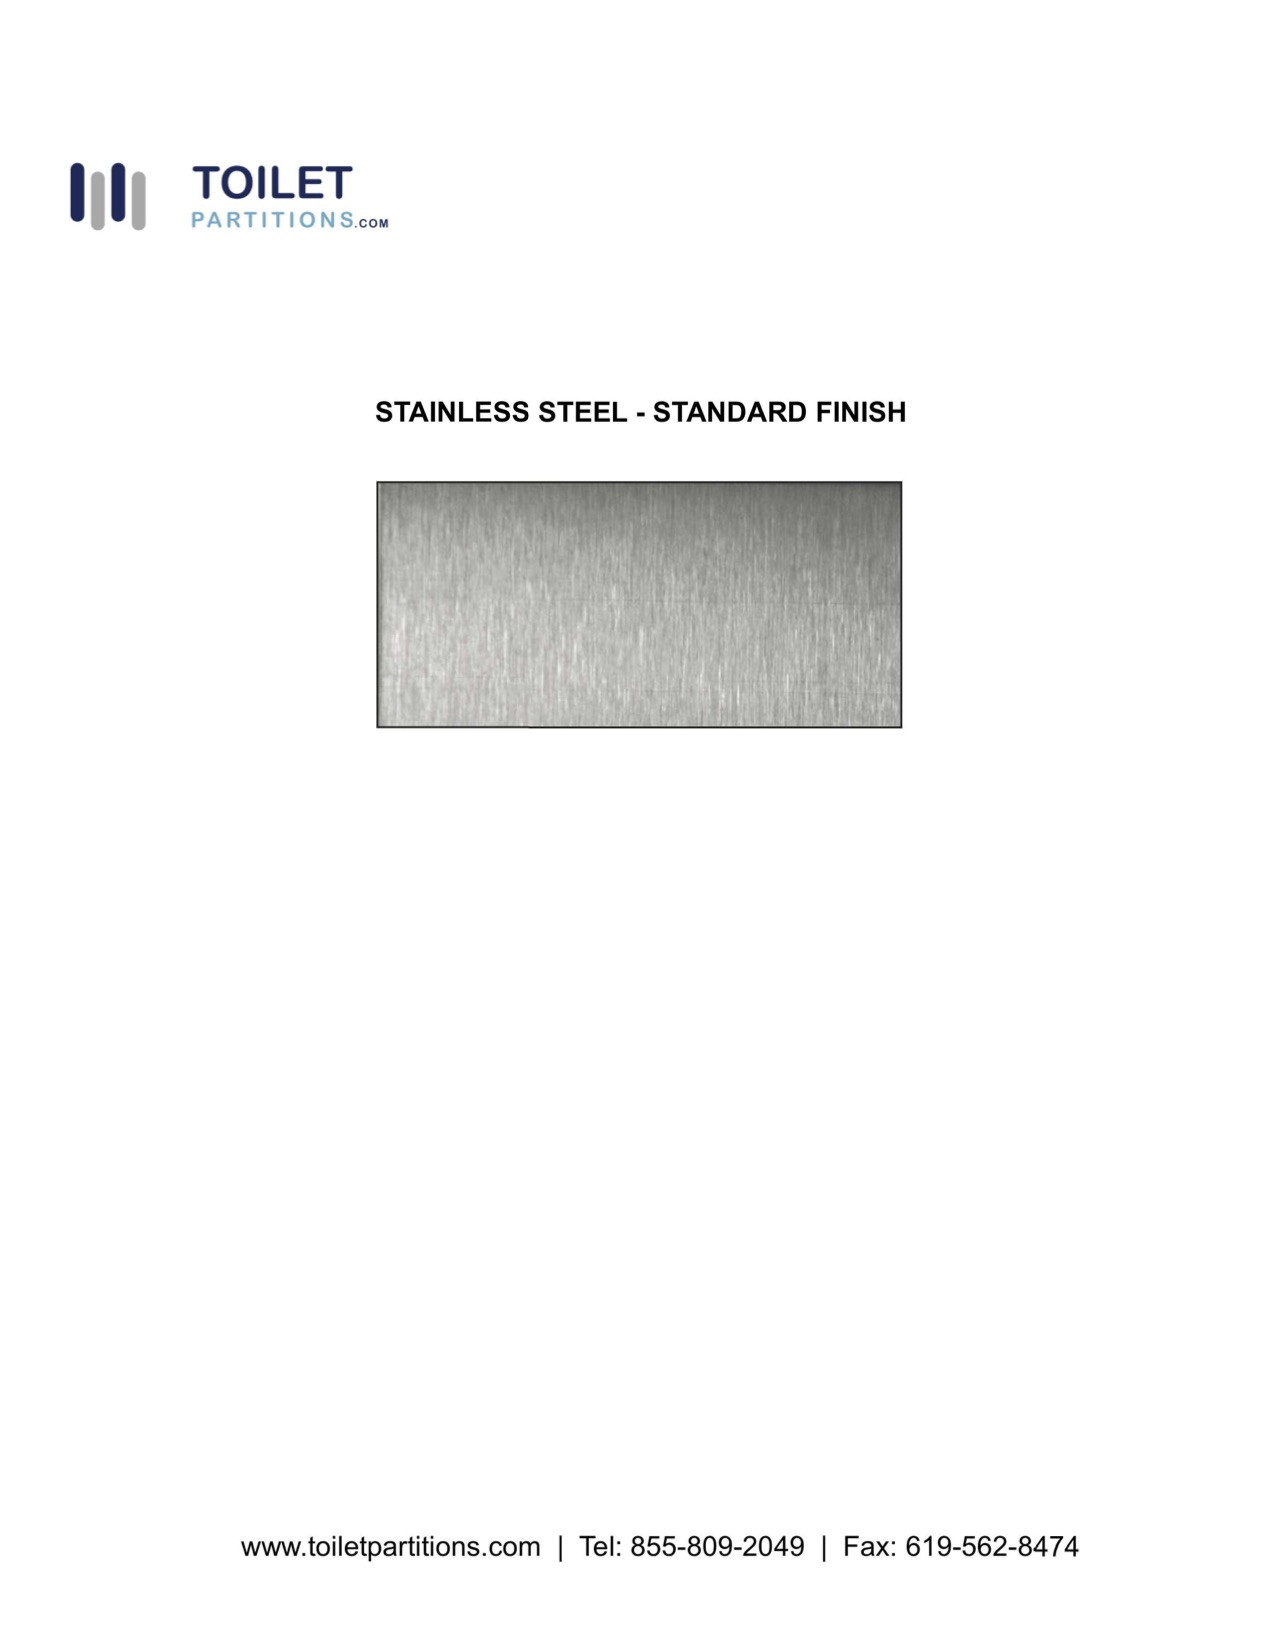 ToiletPartitions-com-stainless-steel-color-card